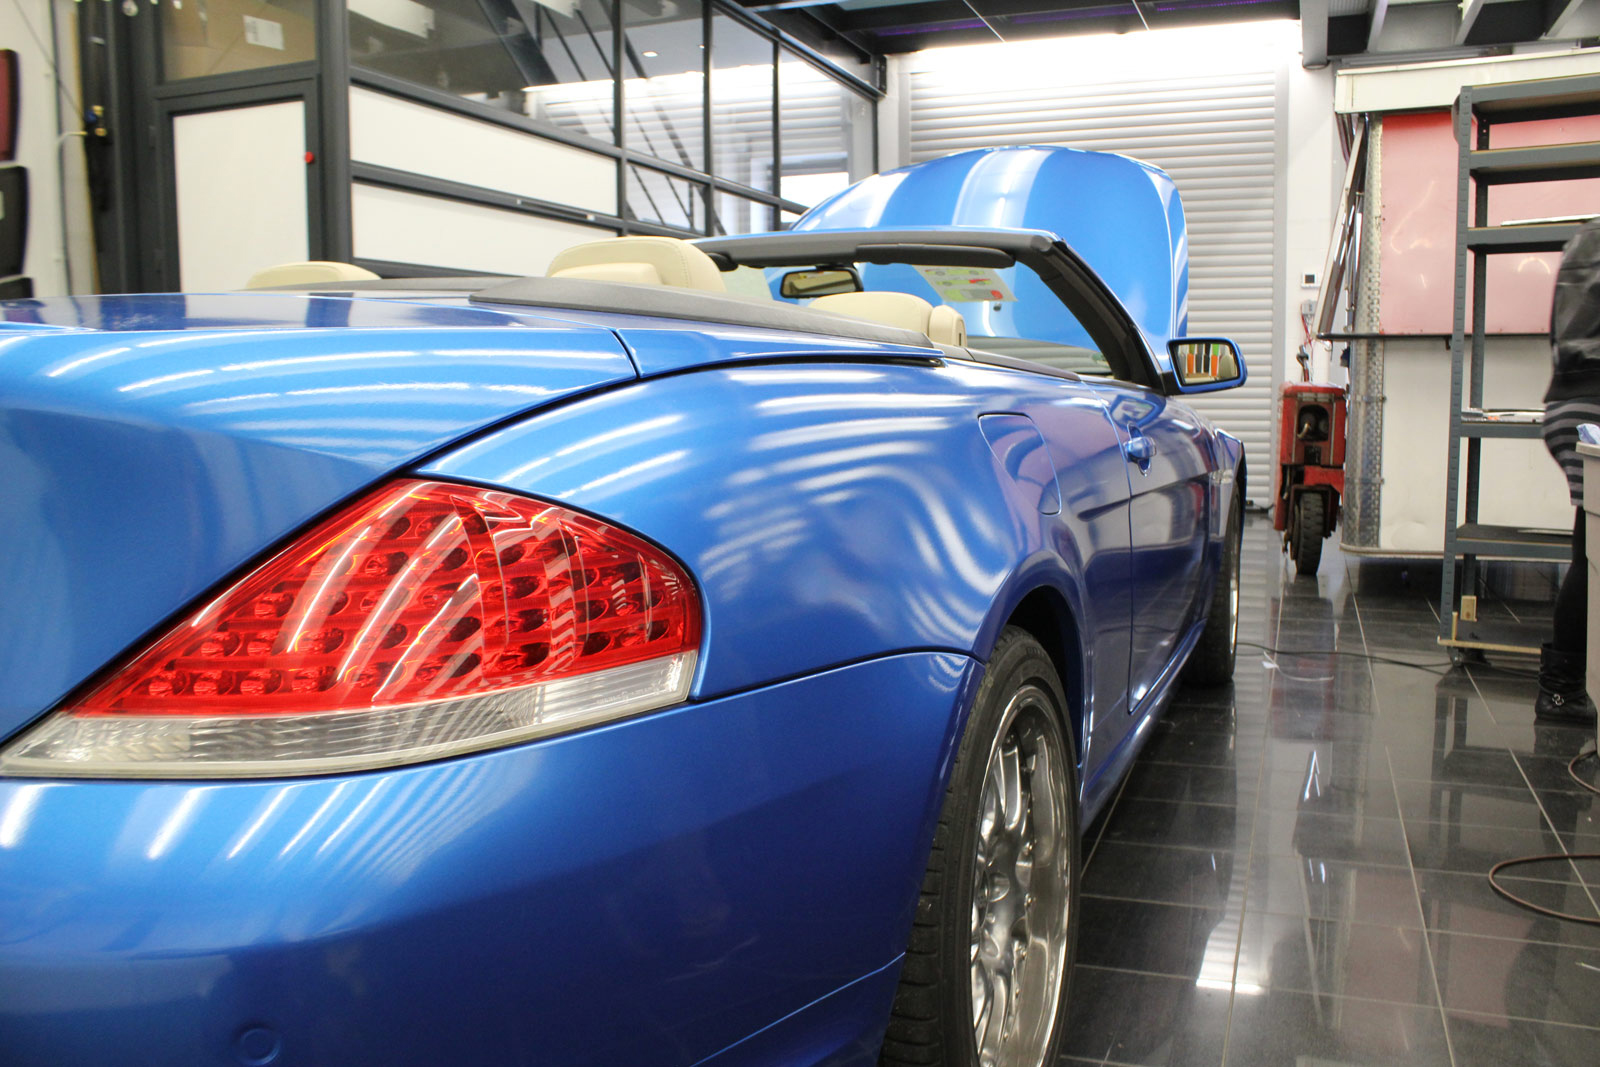 BMW_6er_Cabrio_Folierung_Bright_Blue_Metallic_25